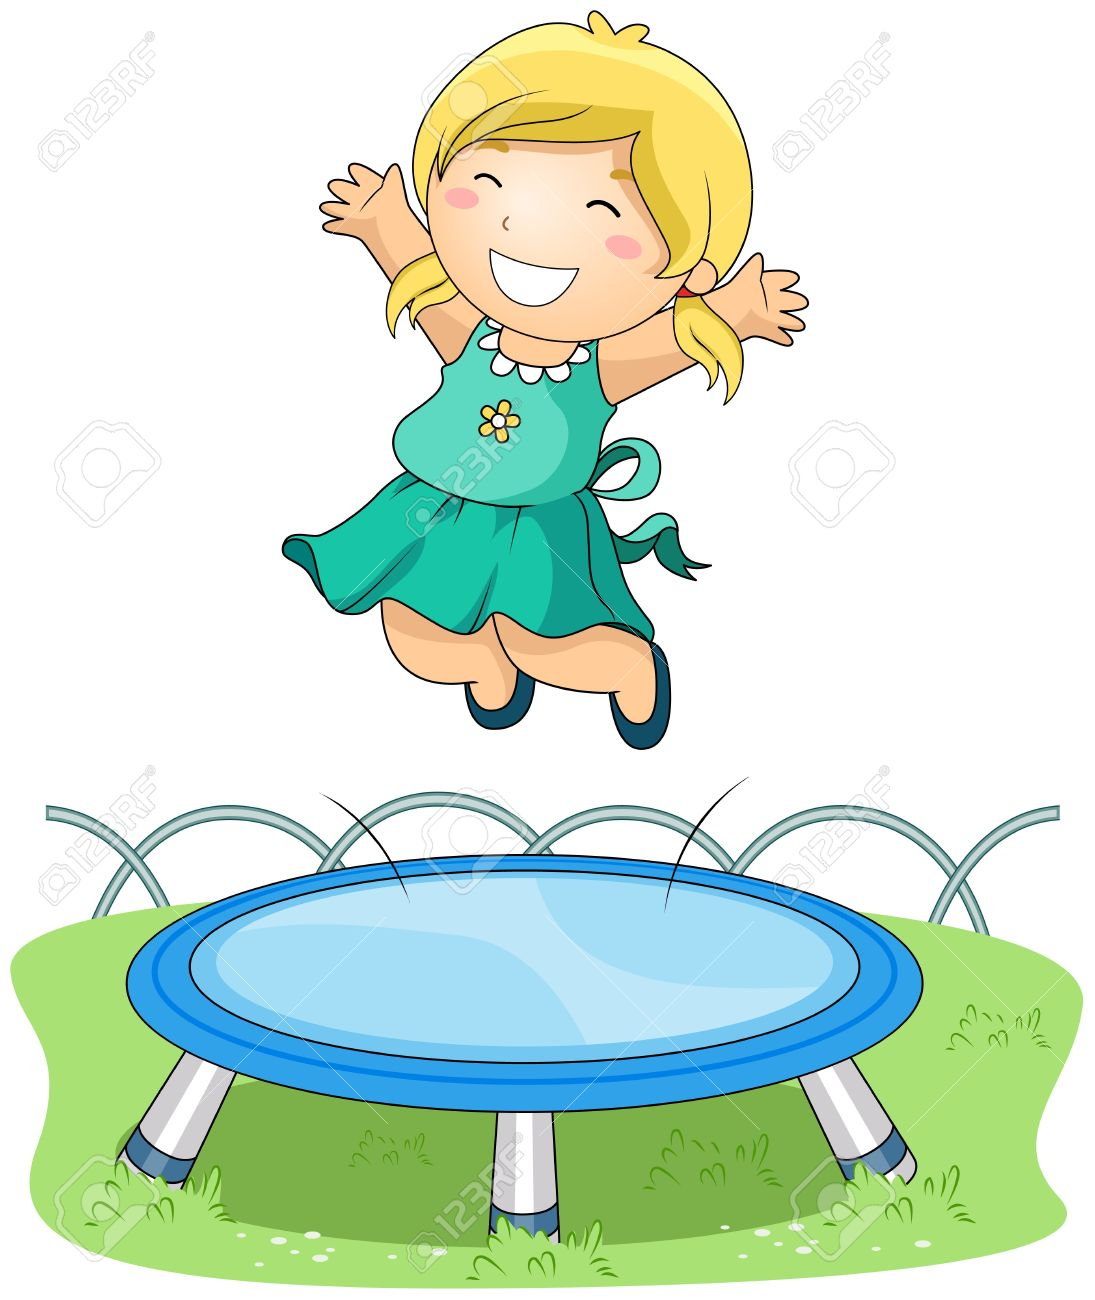 Girl Jumping On Trampoline Stock Photo, Picture And Royalty Free.